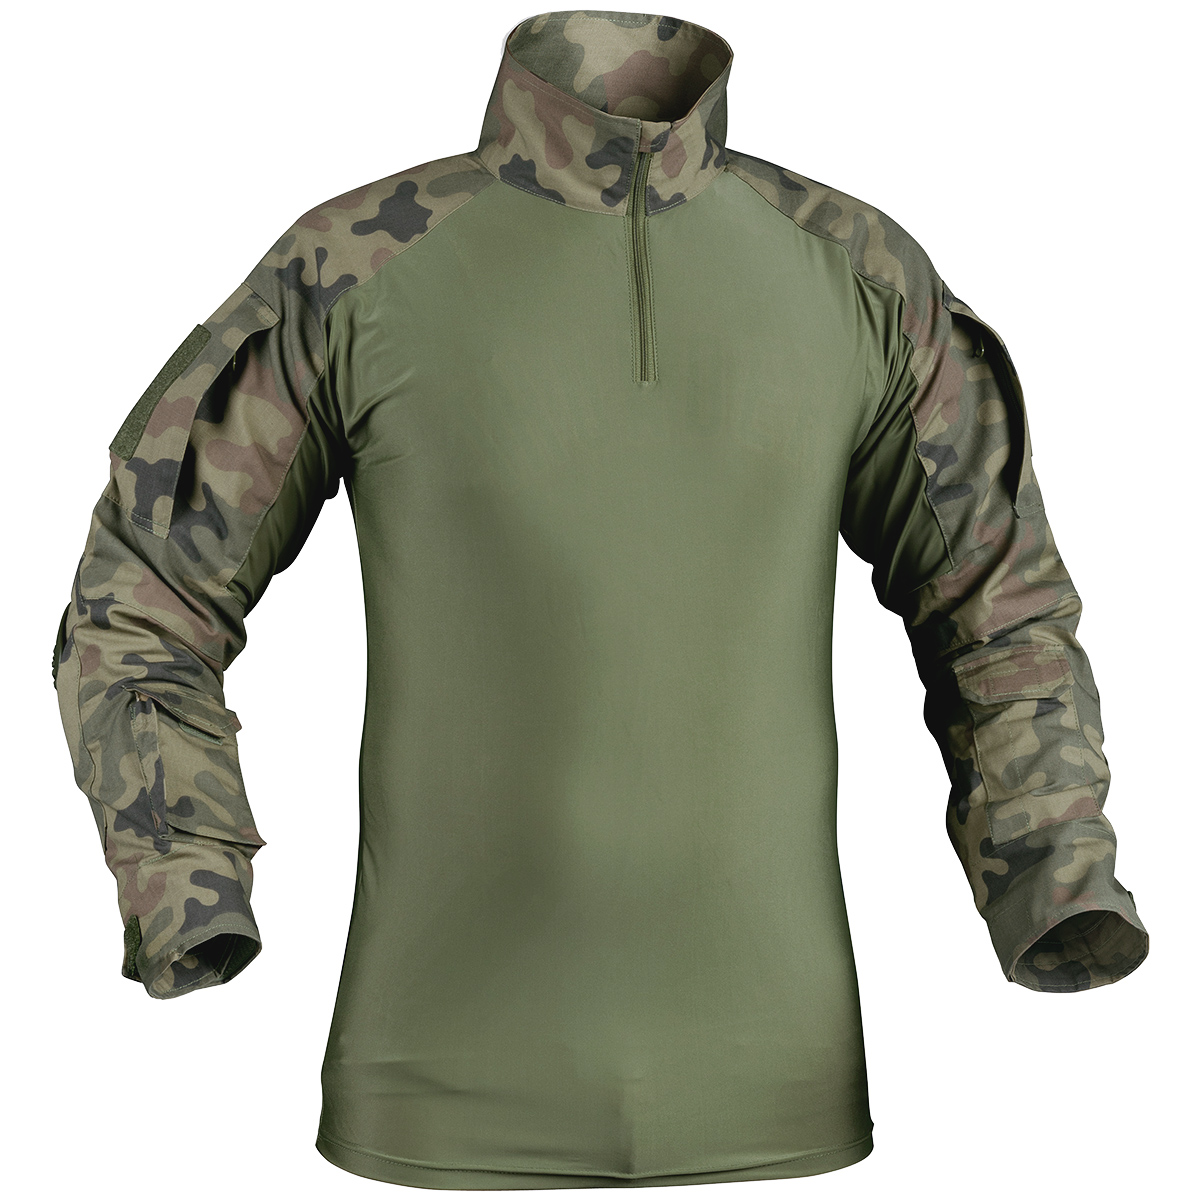 HELIKON TACTICAL ARMY MILITARY COMBAT SHIRT WITH ELBOW PADS POLISH WOODLAND CAMO